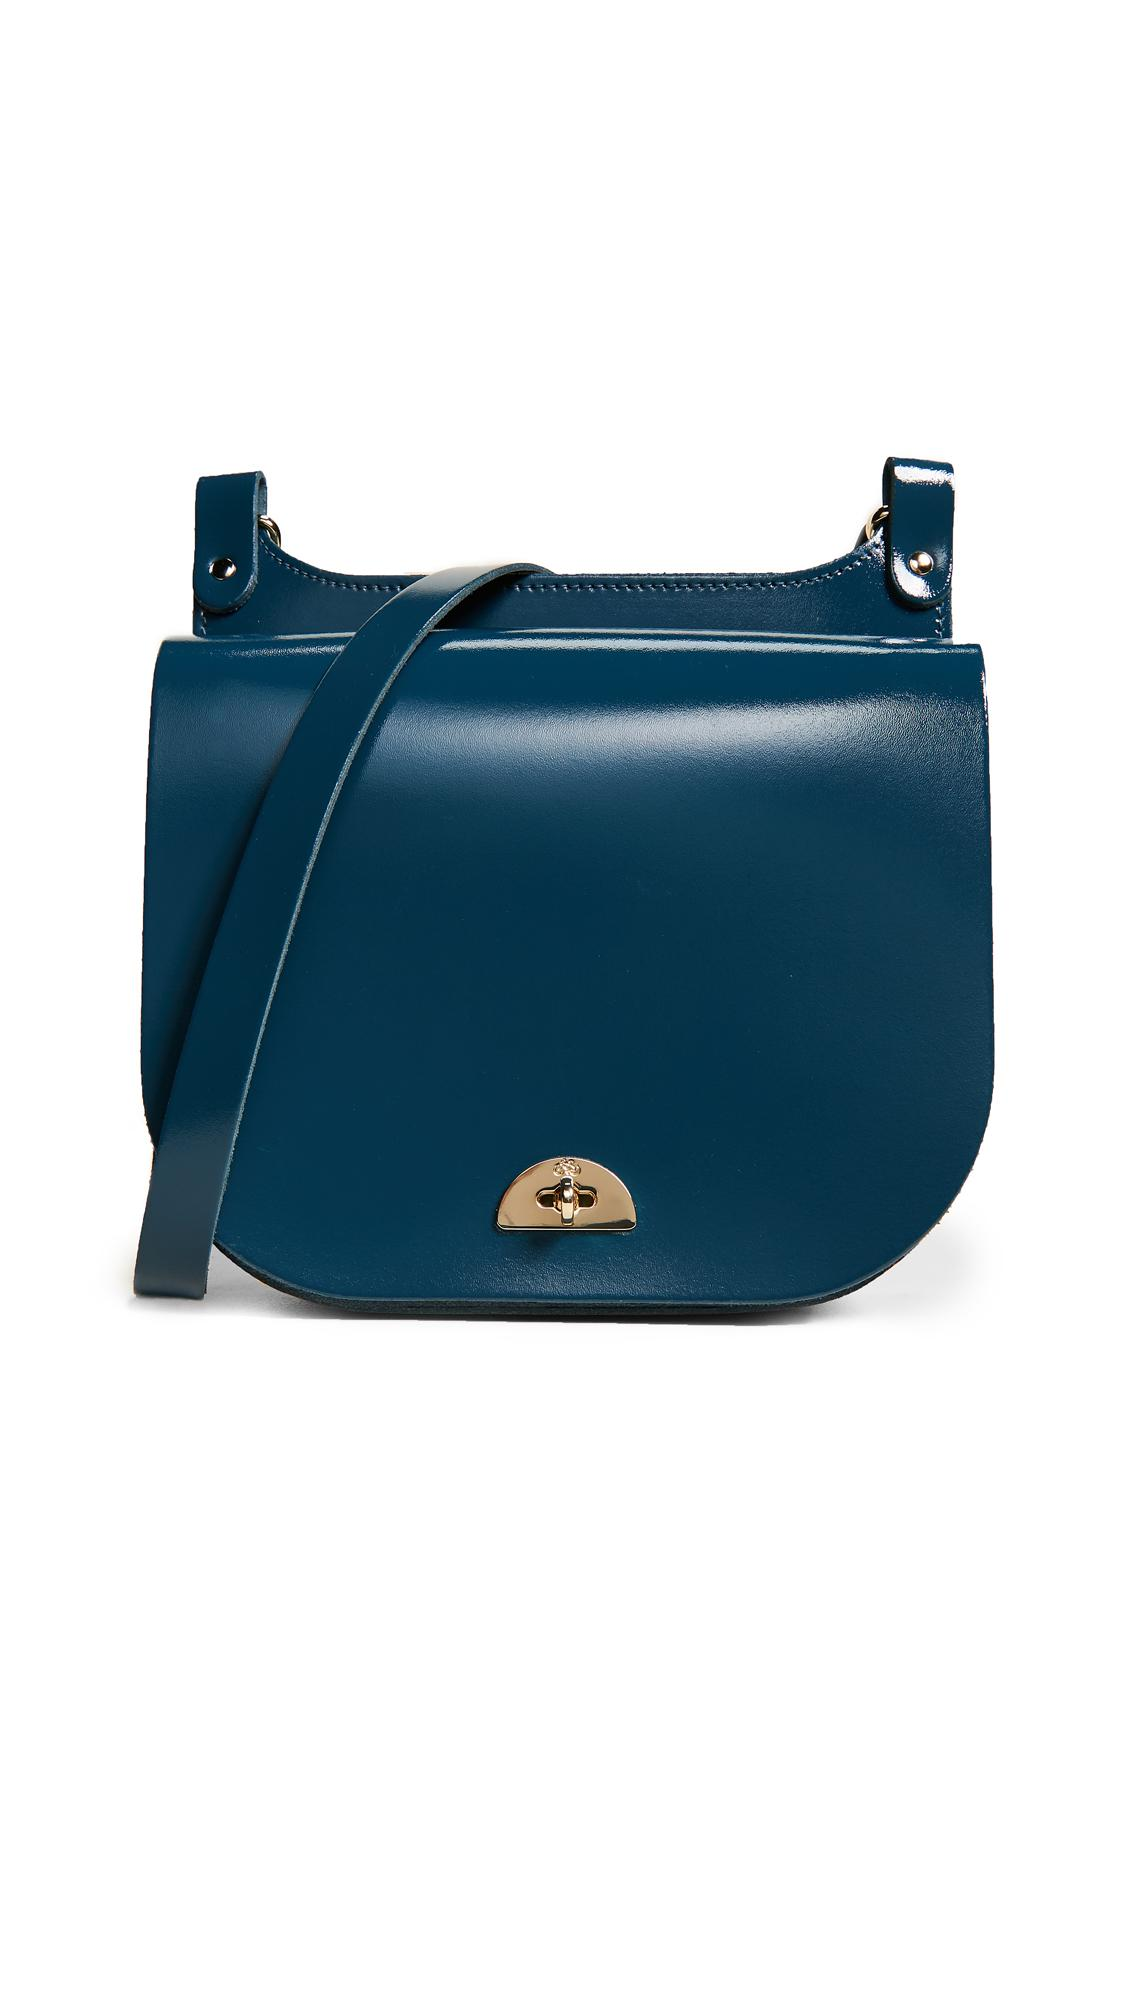 Cambridge Satchel Company Leather Conductor Cross Body in Dark Teal (Blue)